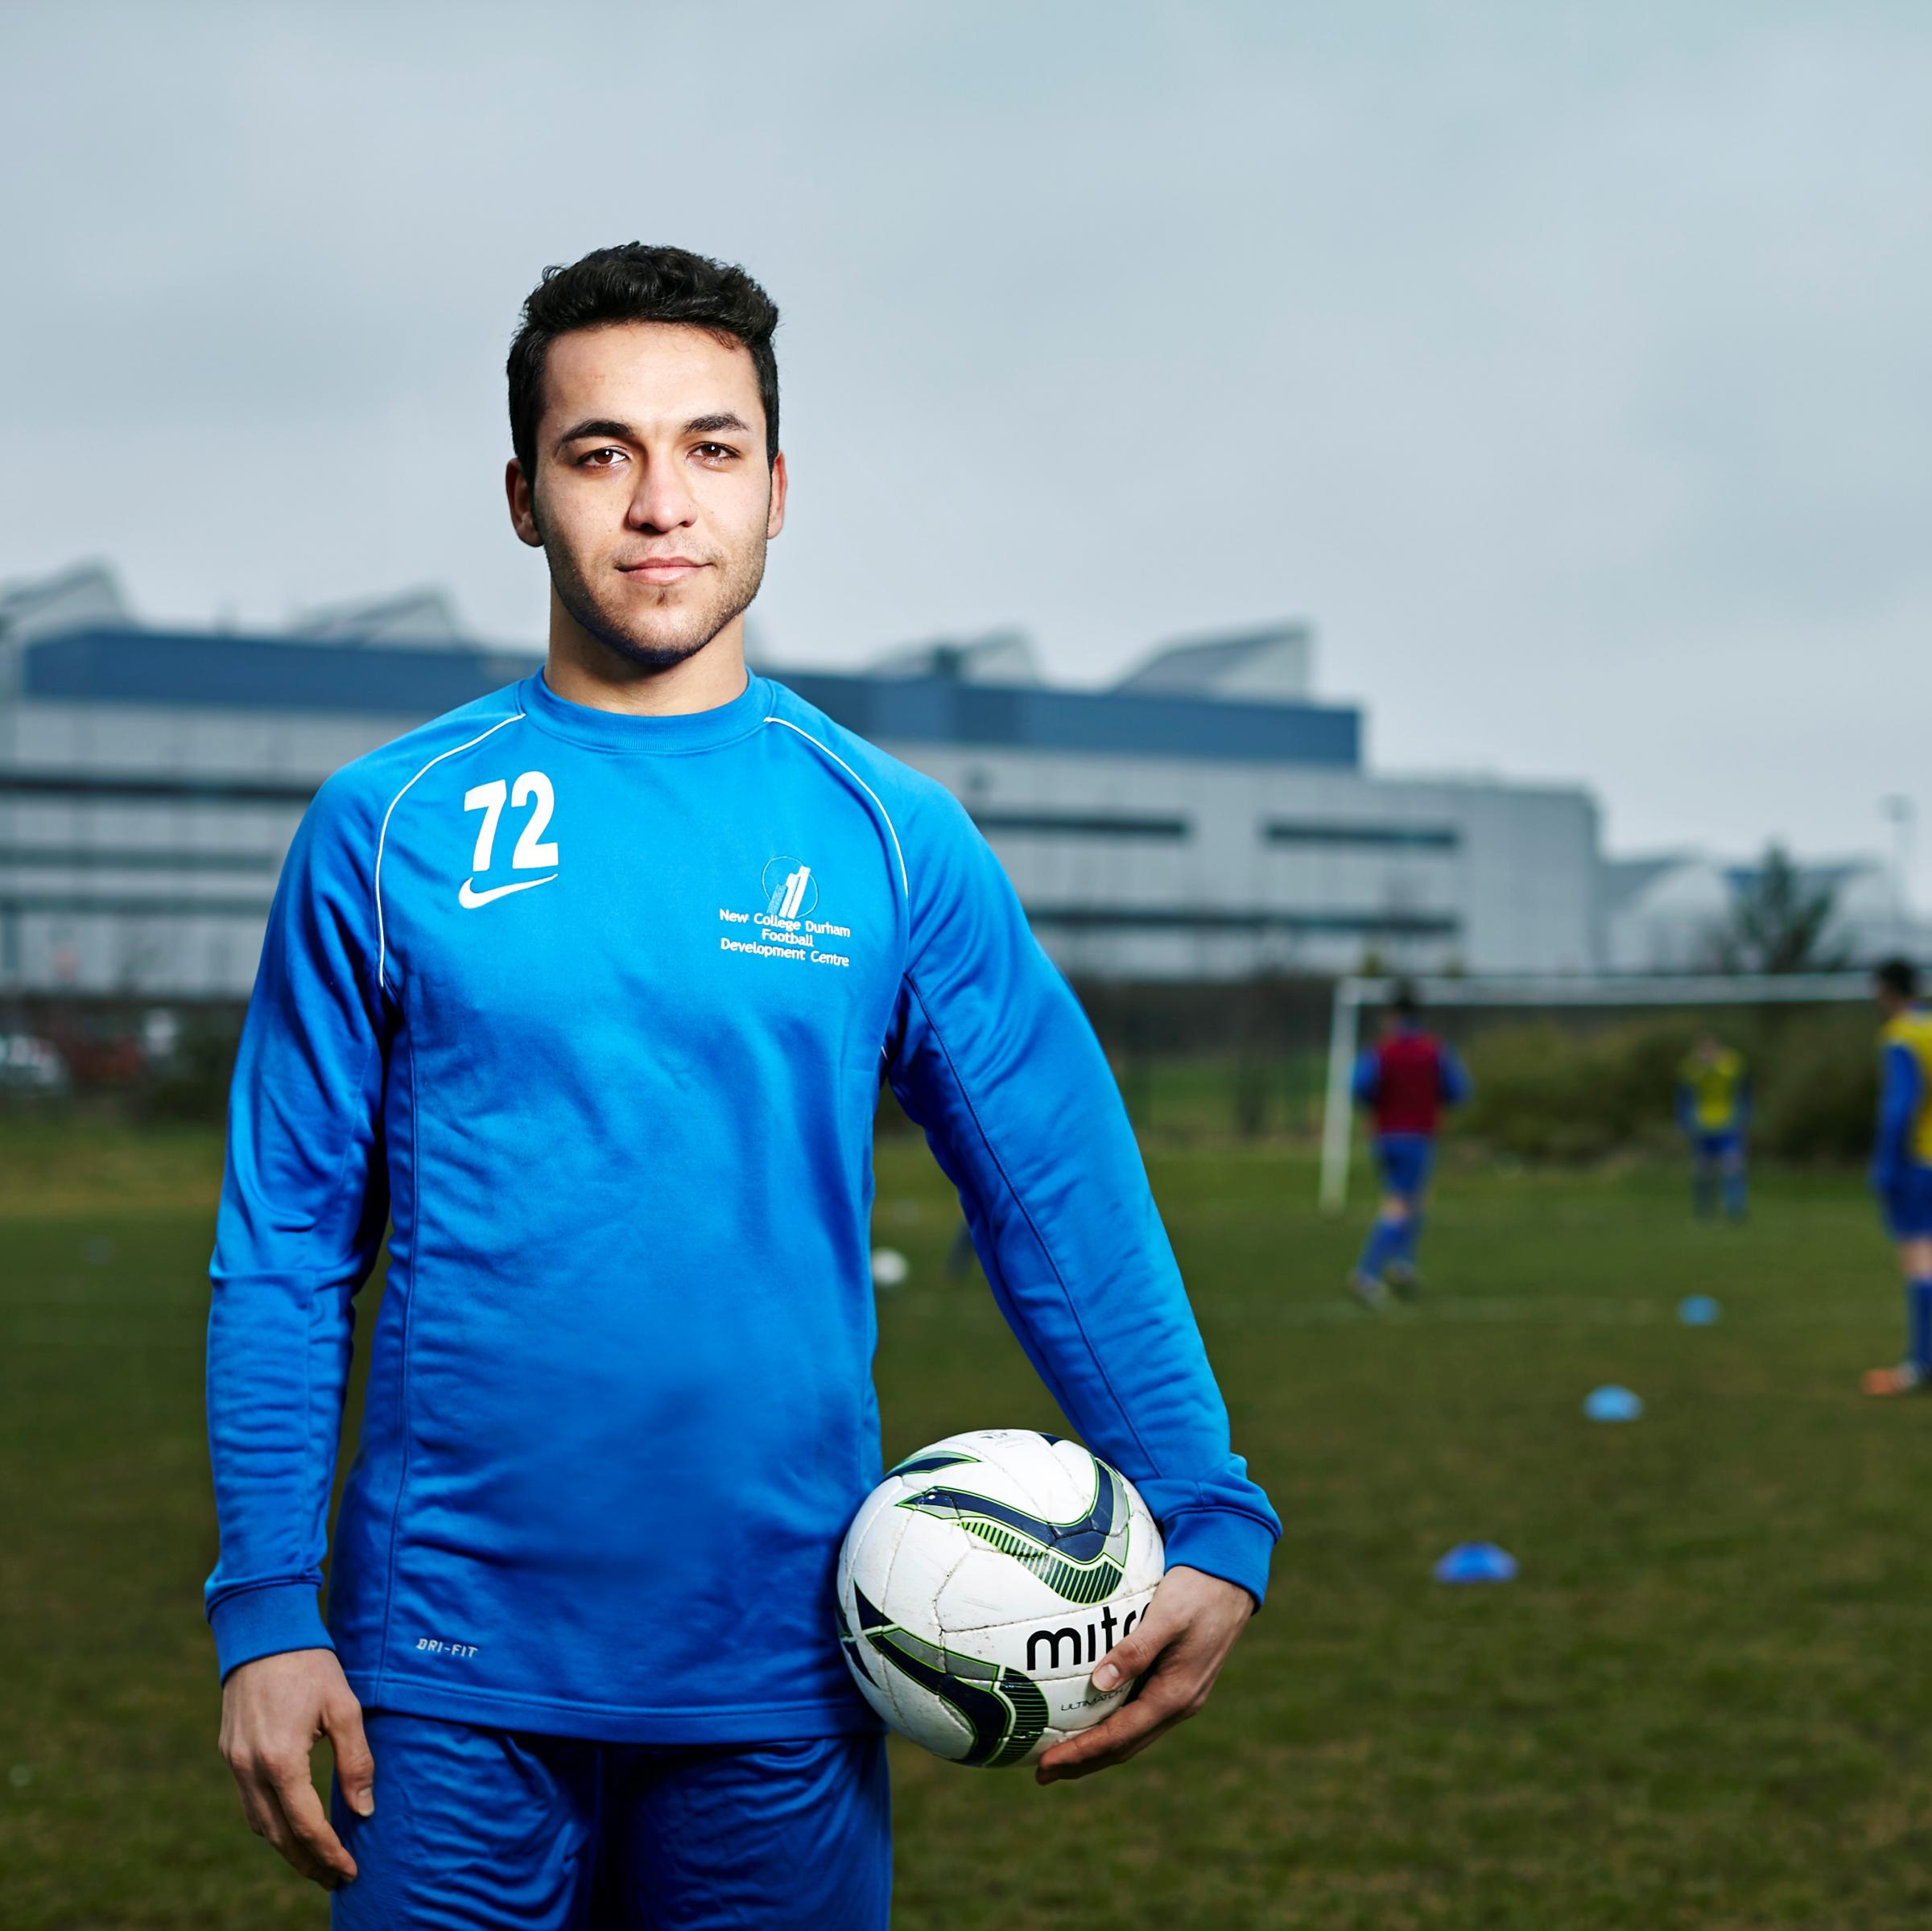 College unveils exciting new initiative for football lovers